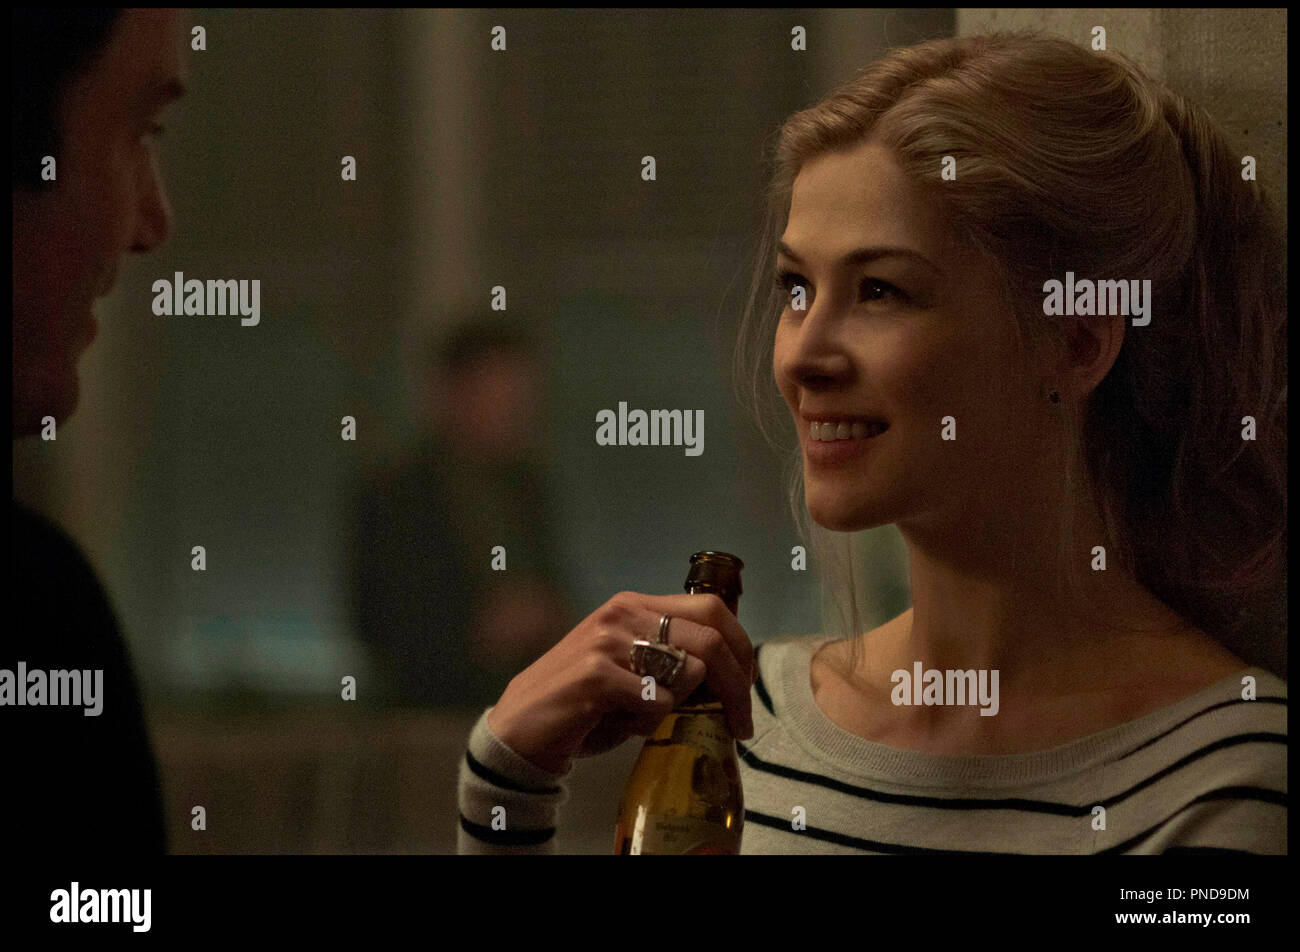 Prod DB © 20th Century Fox - New Regency Pictures - Pacific Standard / DR GONE GIRL de David Fincher 2014 USA avec Rosamund Pike d'apres le roman de Gillian Flynn - Stock Image